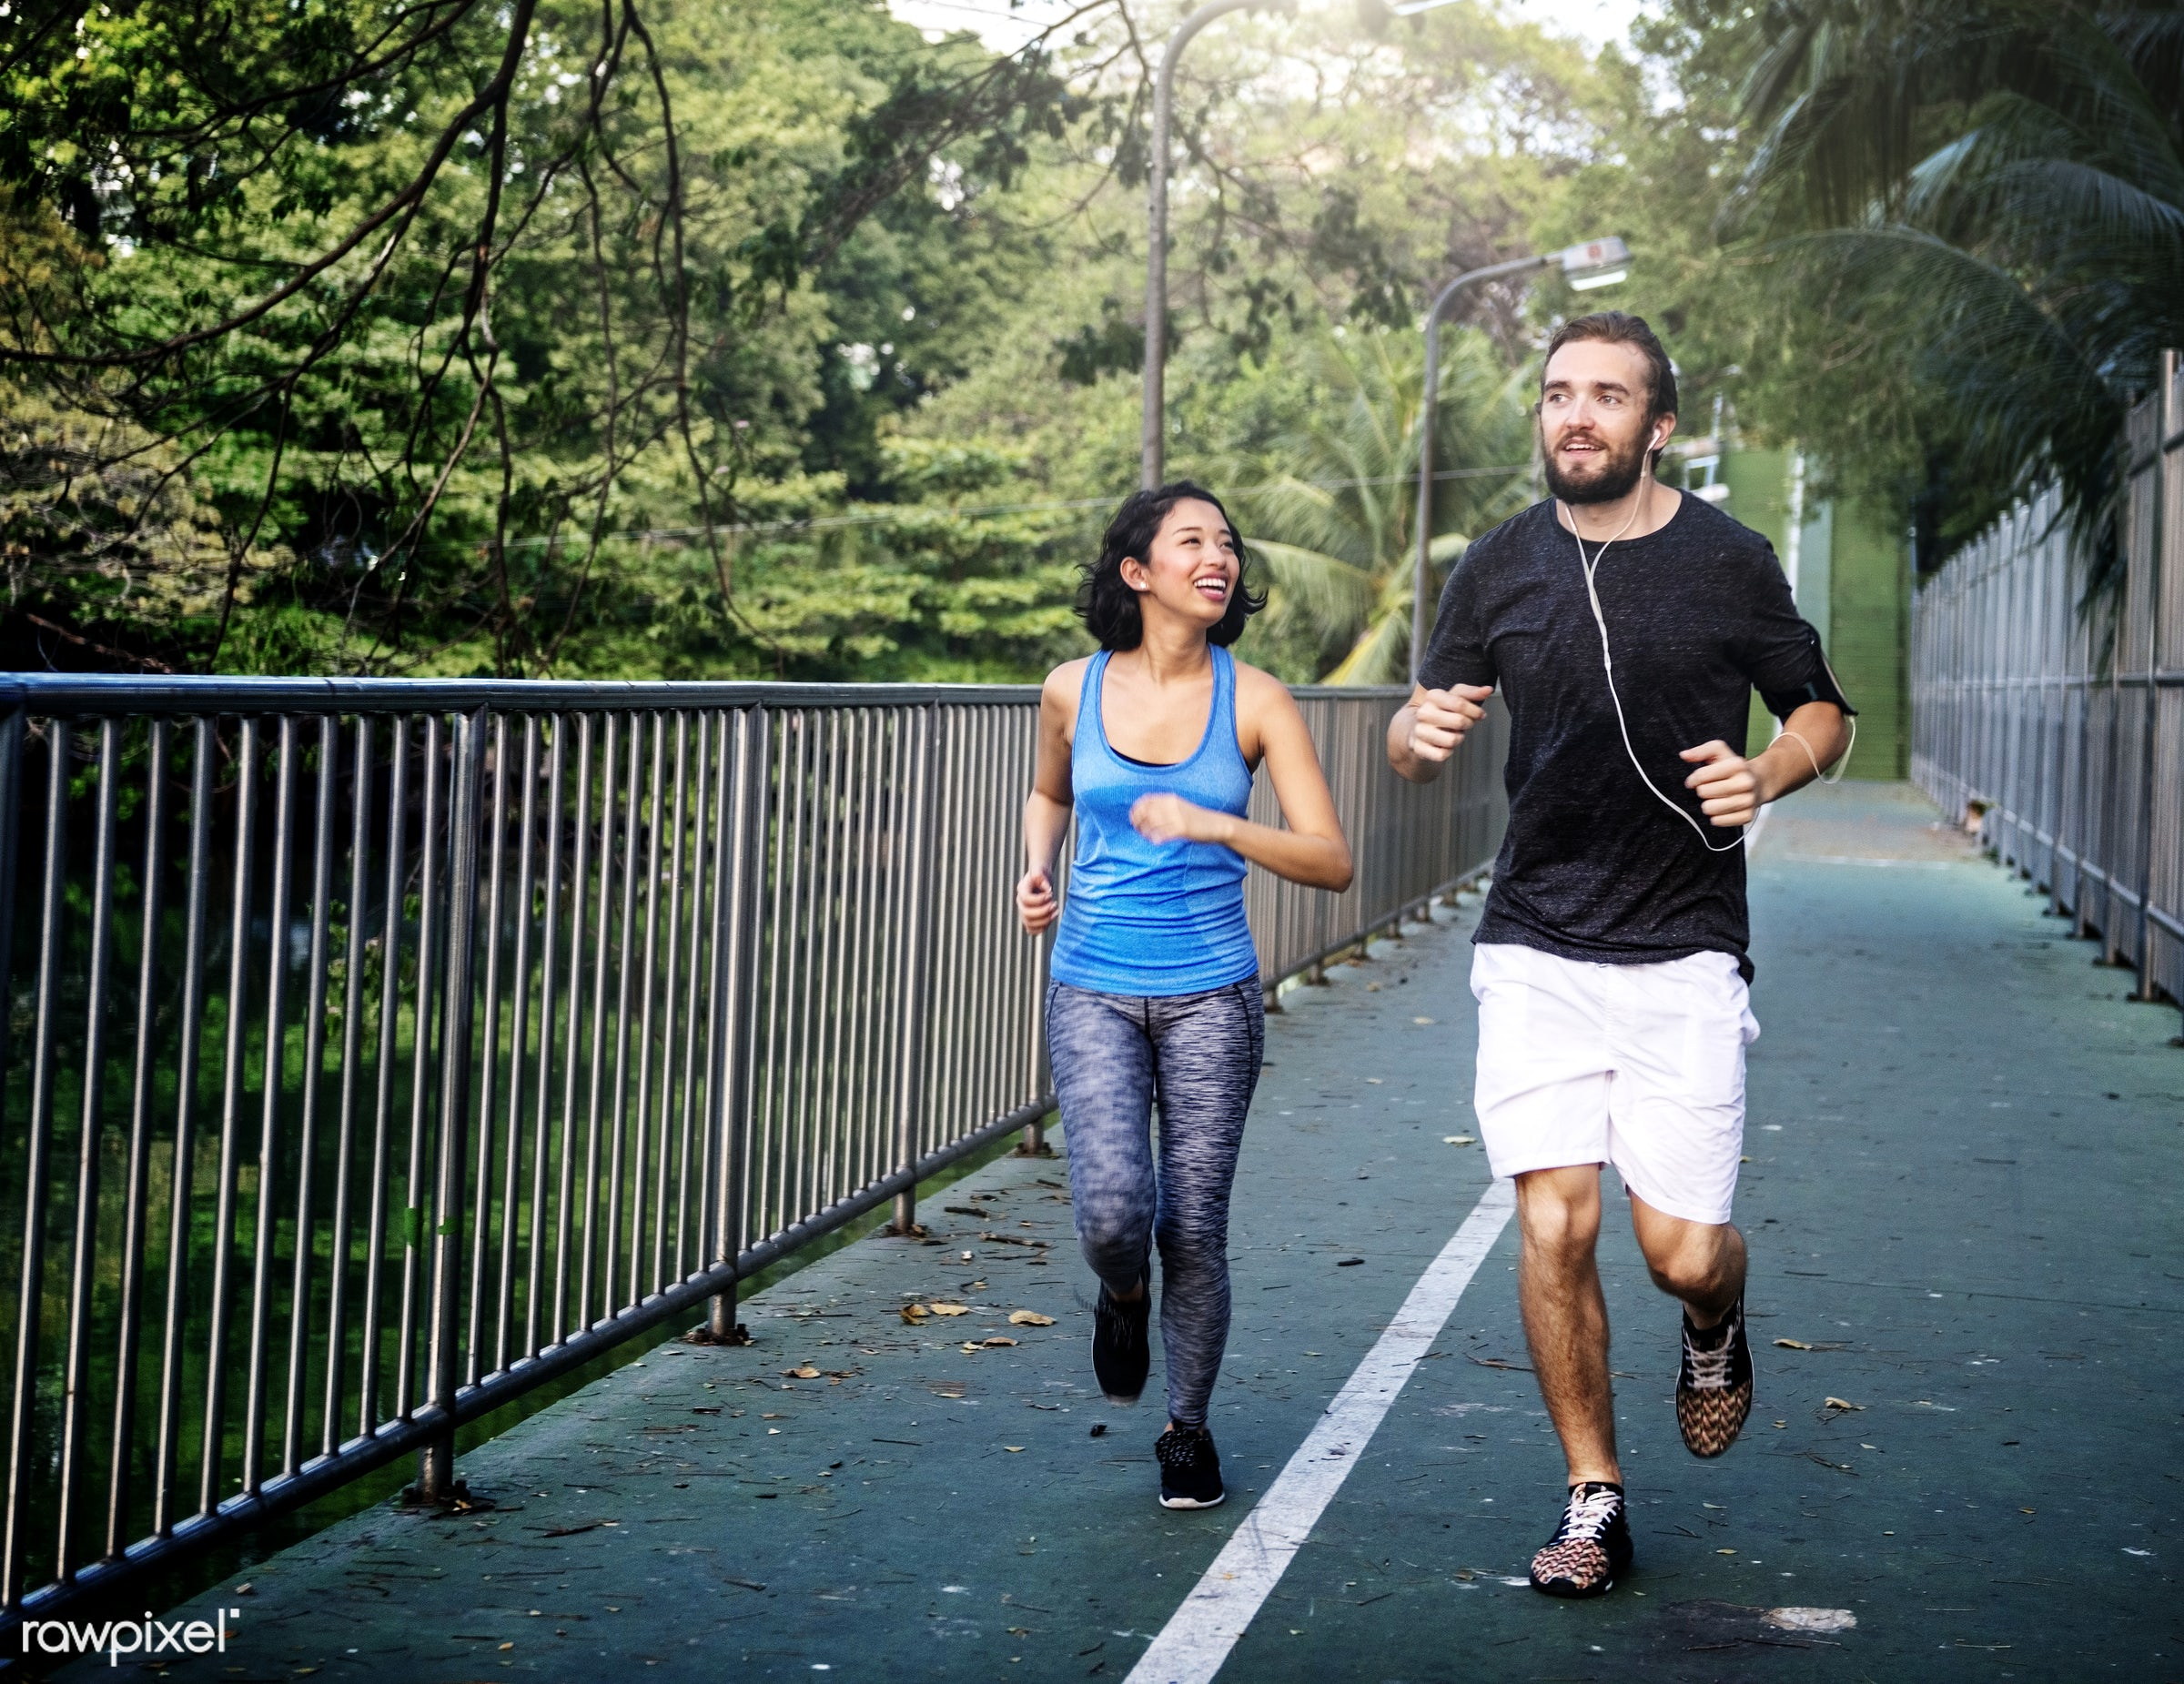 Couple jogging together - jogging, running, active, adult, asian, athlete, athletic, attractive, boyfriend, couple, exercise...